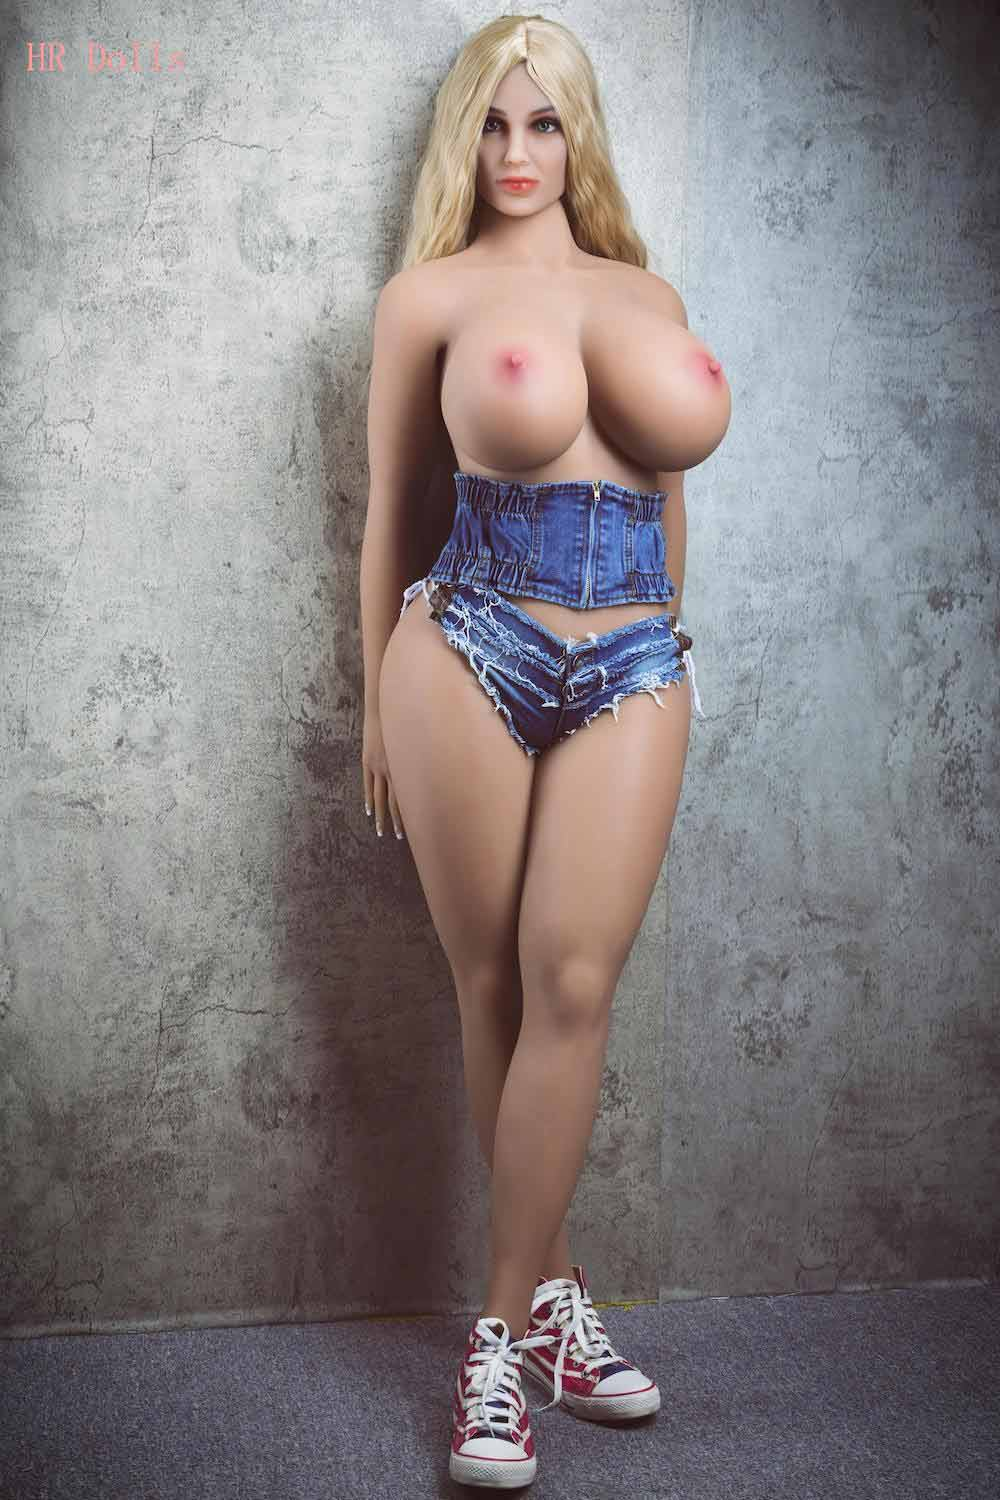 Big breasted sex doll without a bra